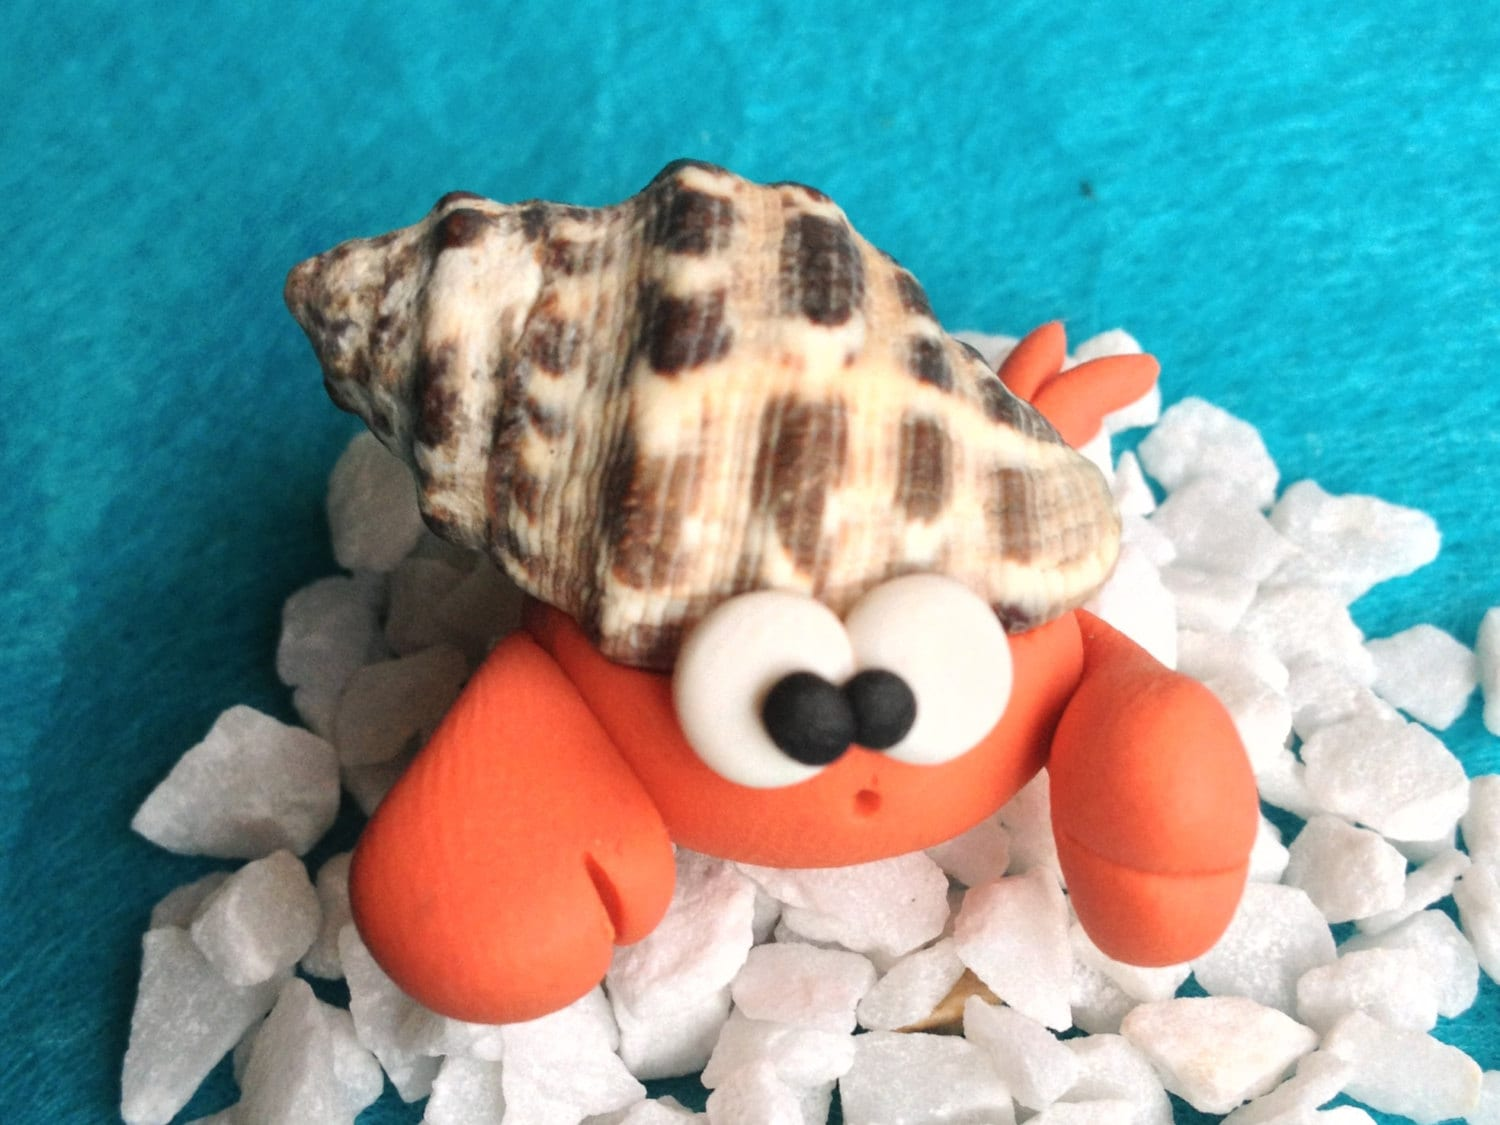 Hermit Crab - Paguro Bernardo (No 1) - A Little Polymer Clay Creation - bdbworld